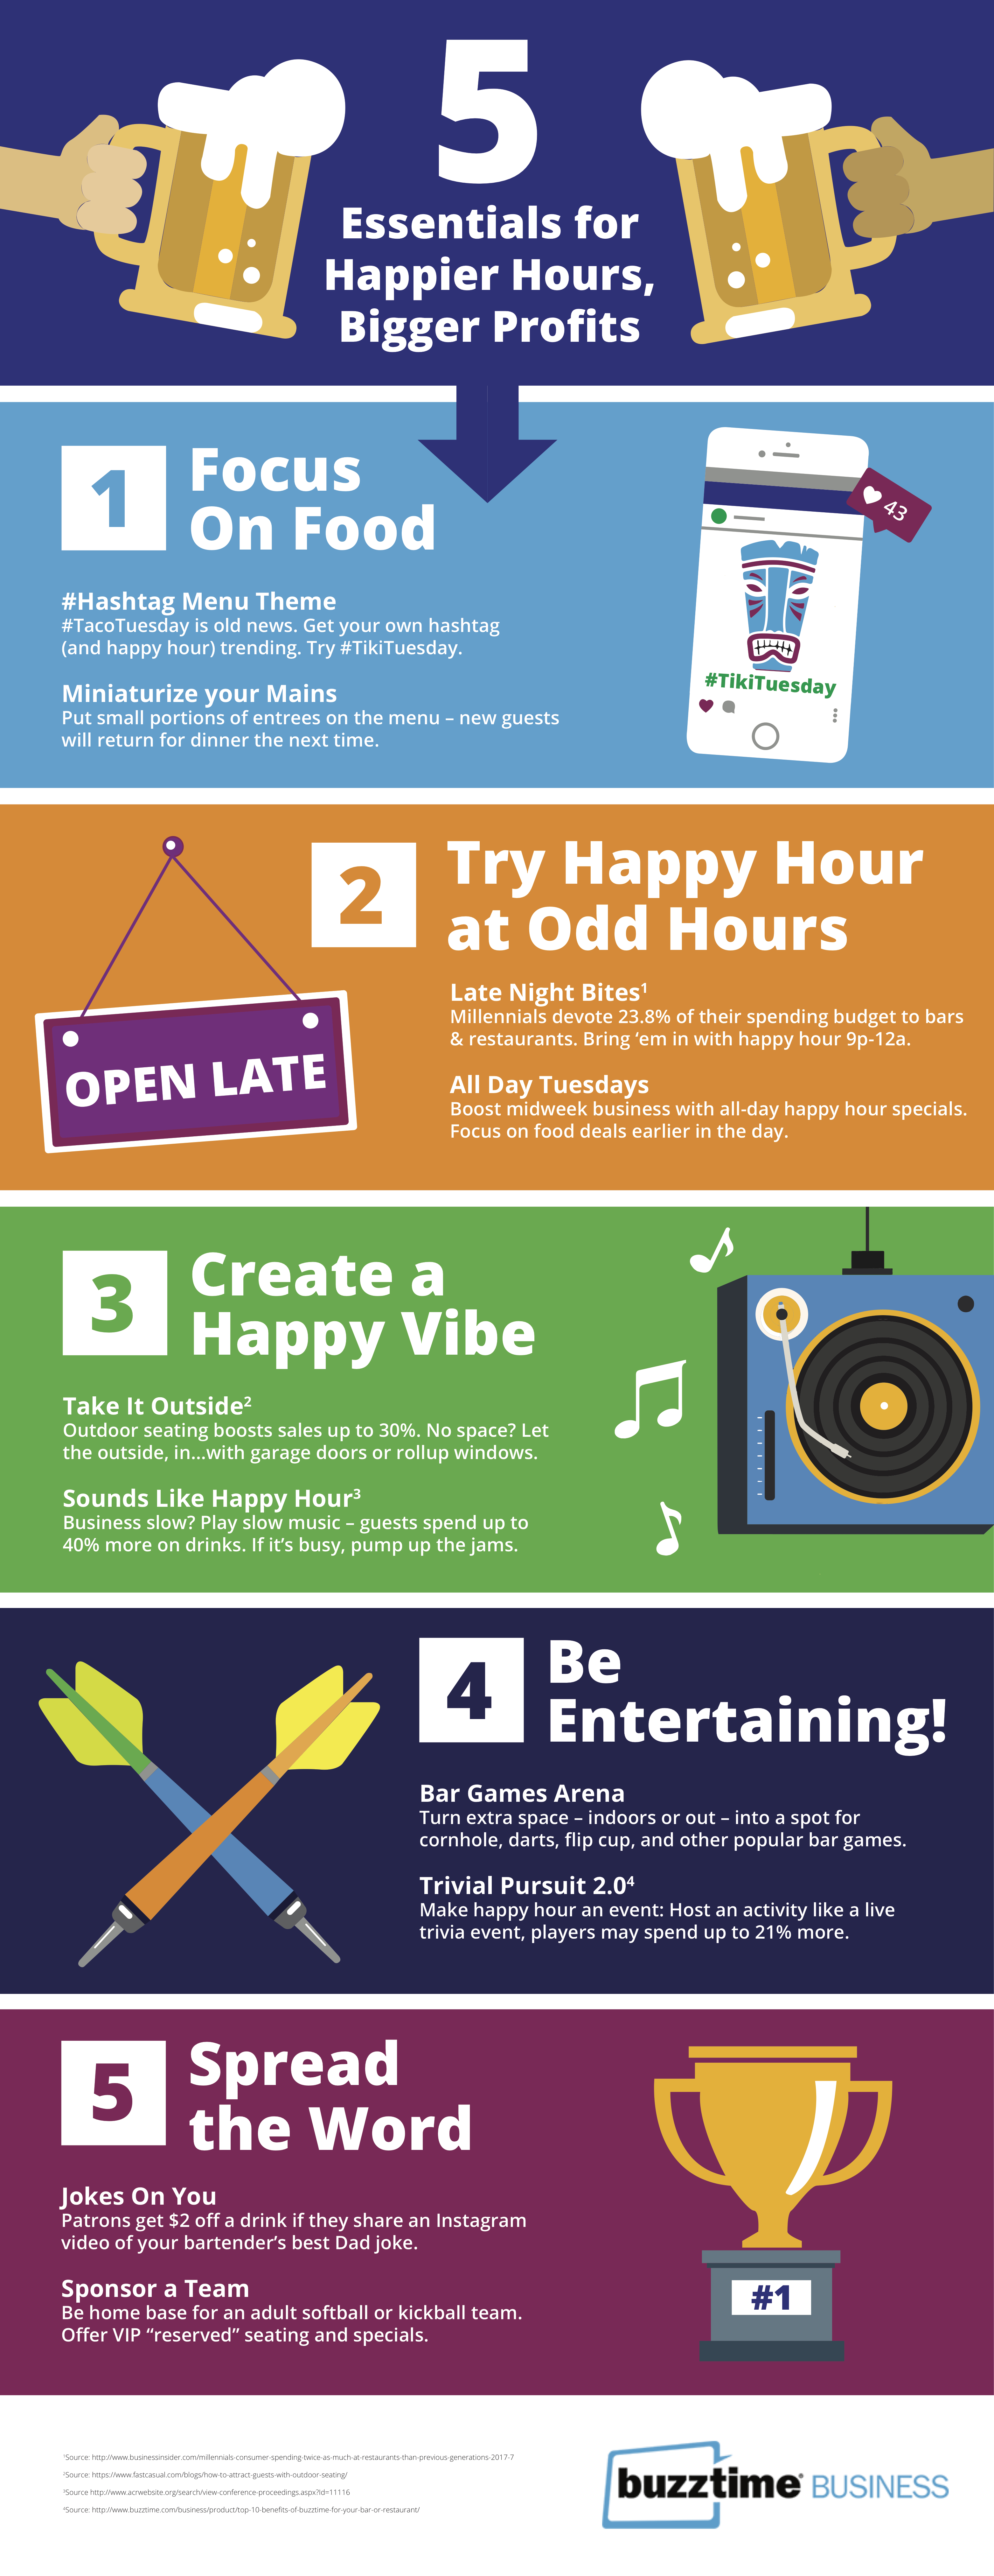 5 Ways To Make Your Happy Hour The Best On The Block Buzztime